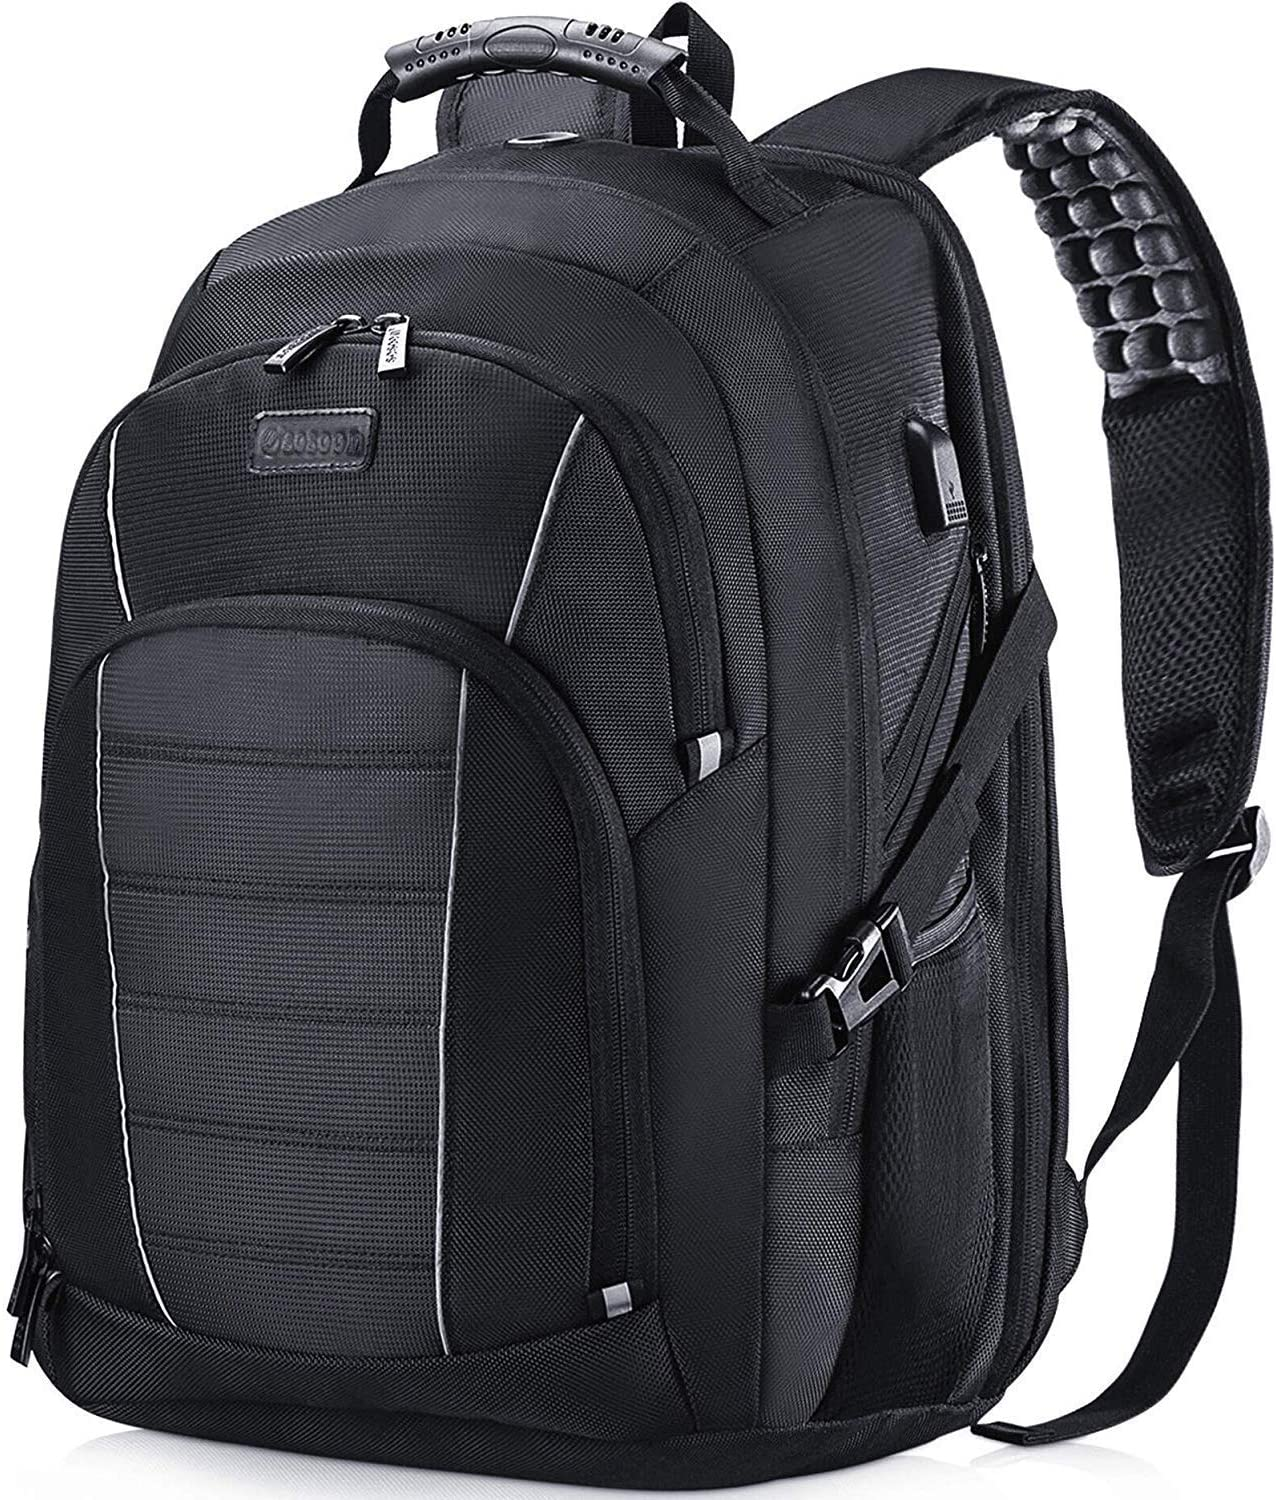 Sosoon Business and Travel Backpack